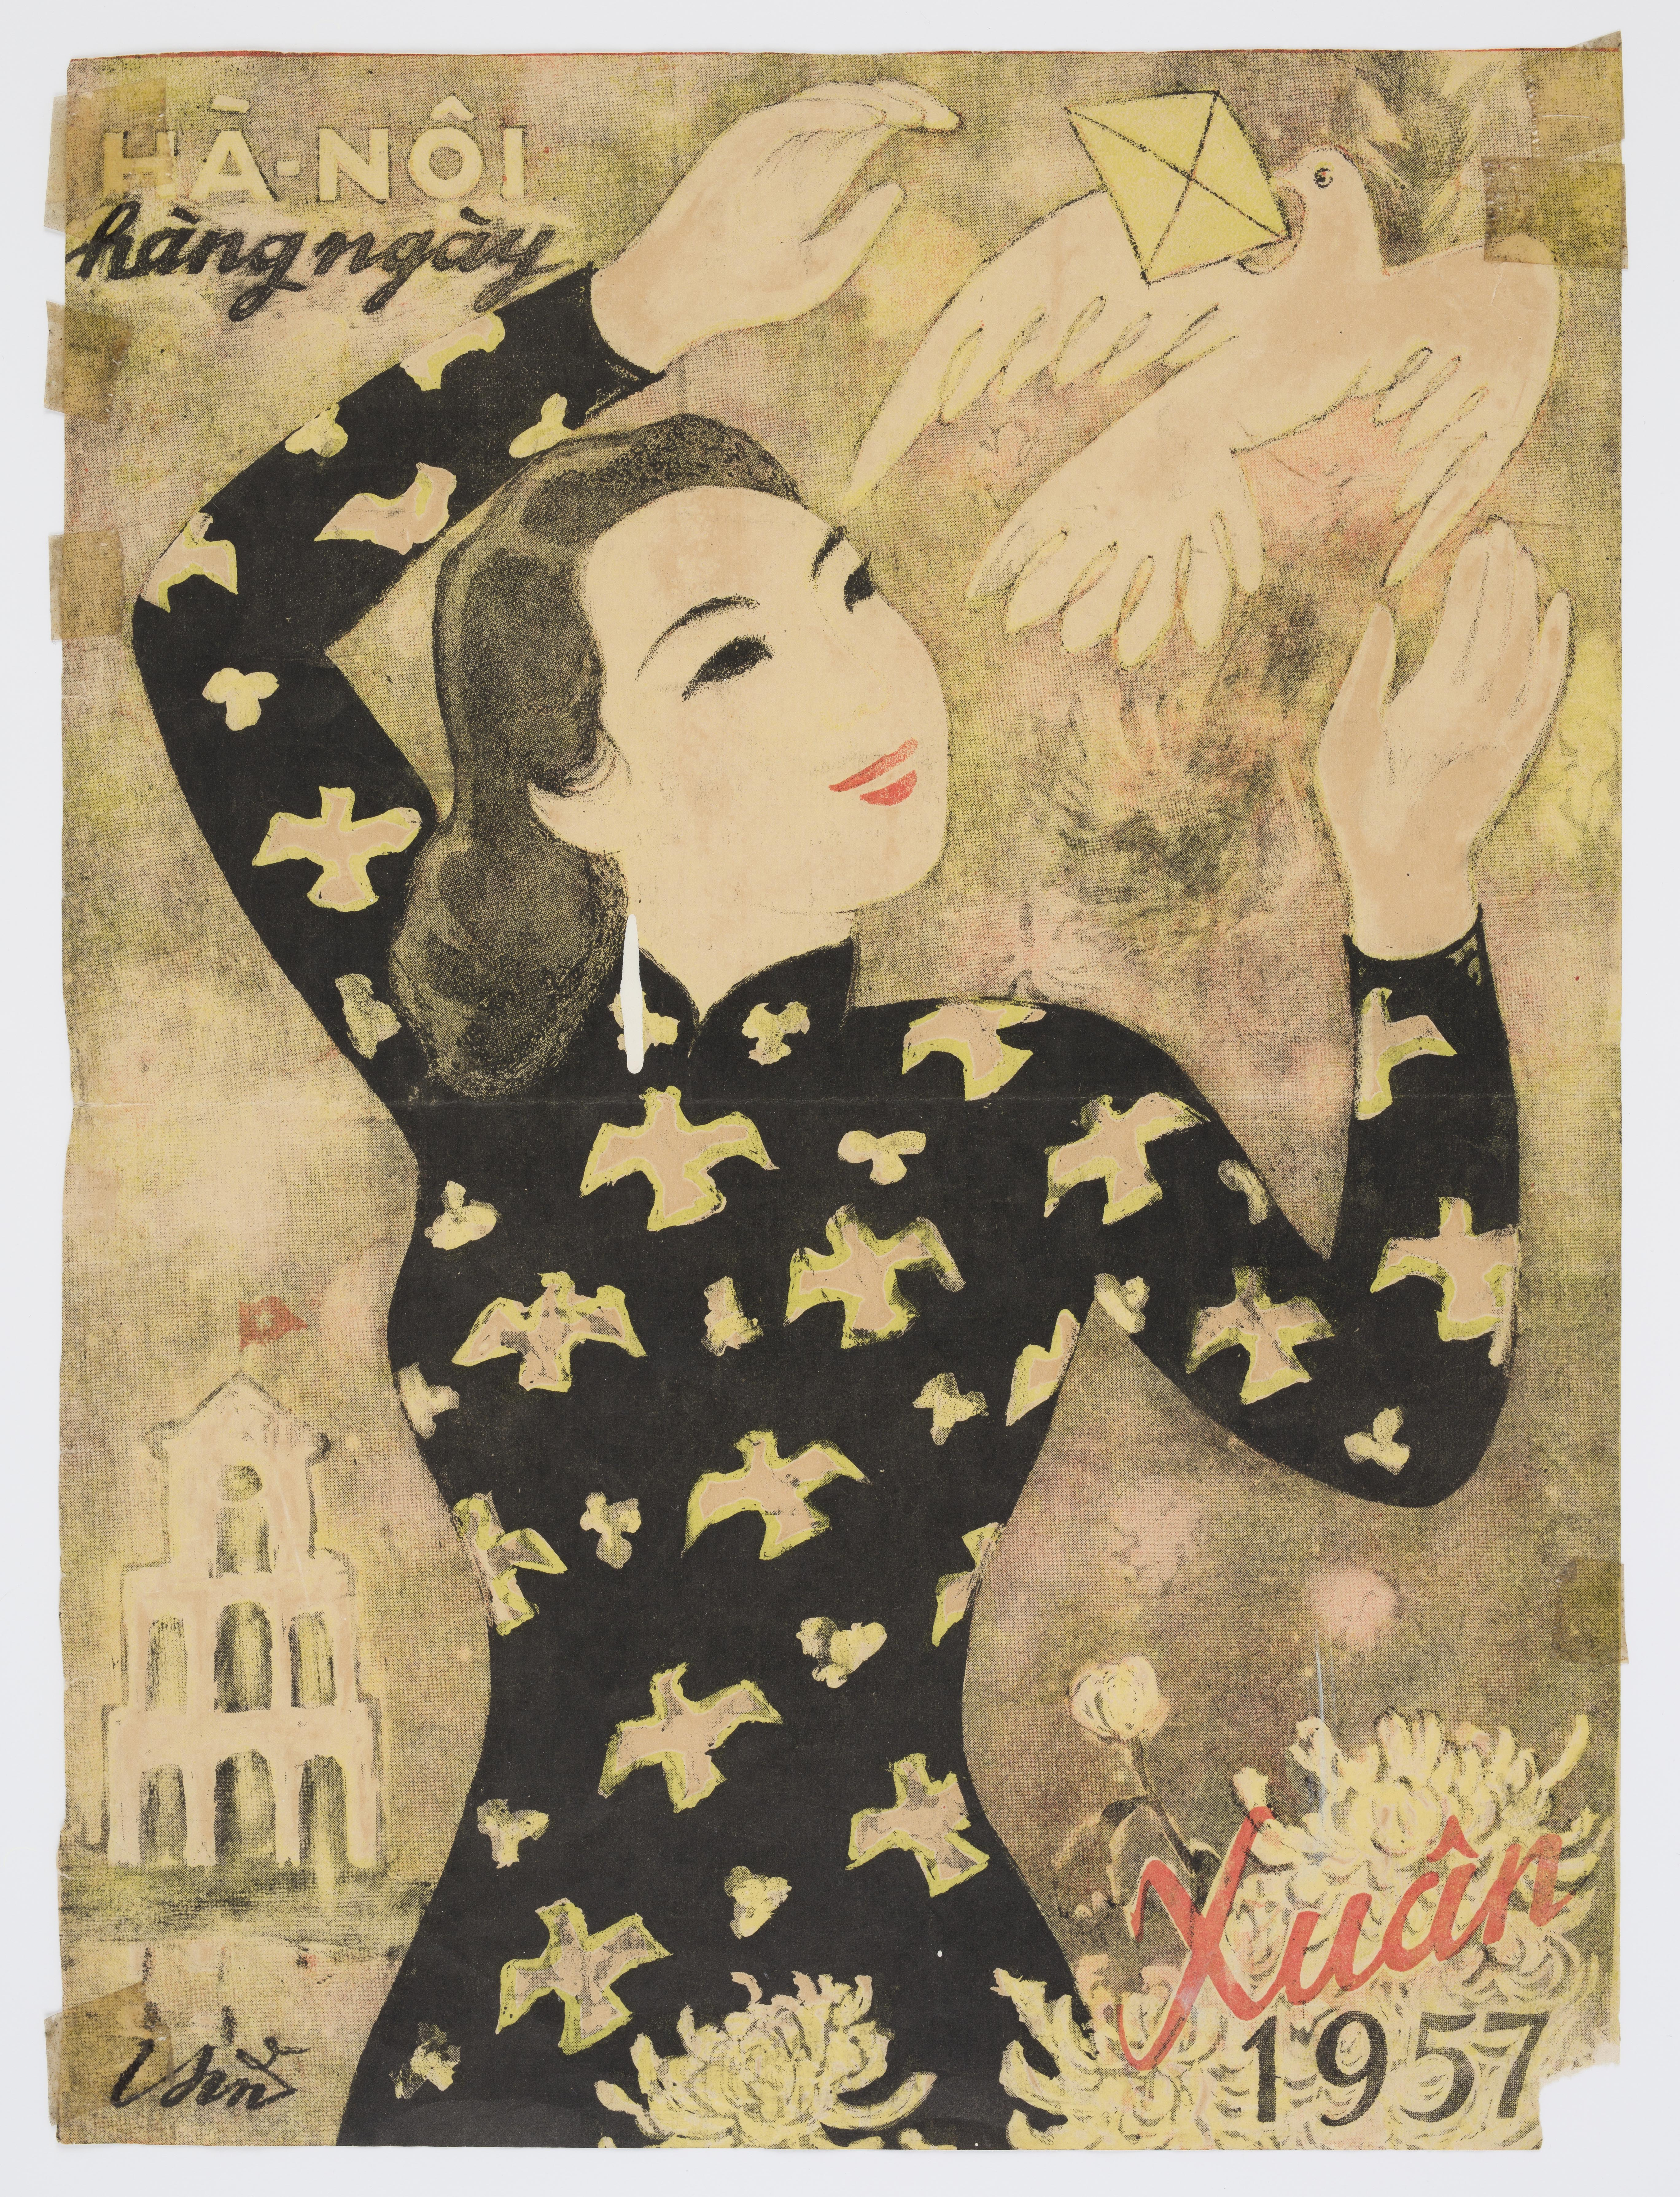 A poster print of a woman in traditional Vietnamese dress, reaching out to a dove.